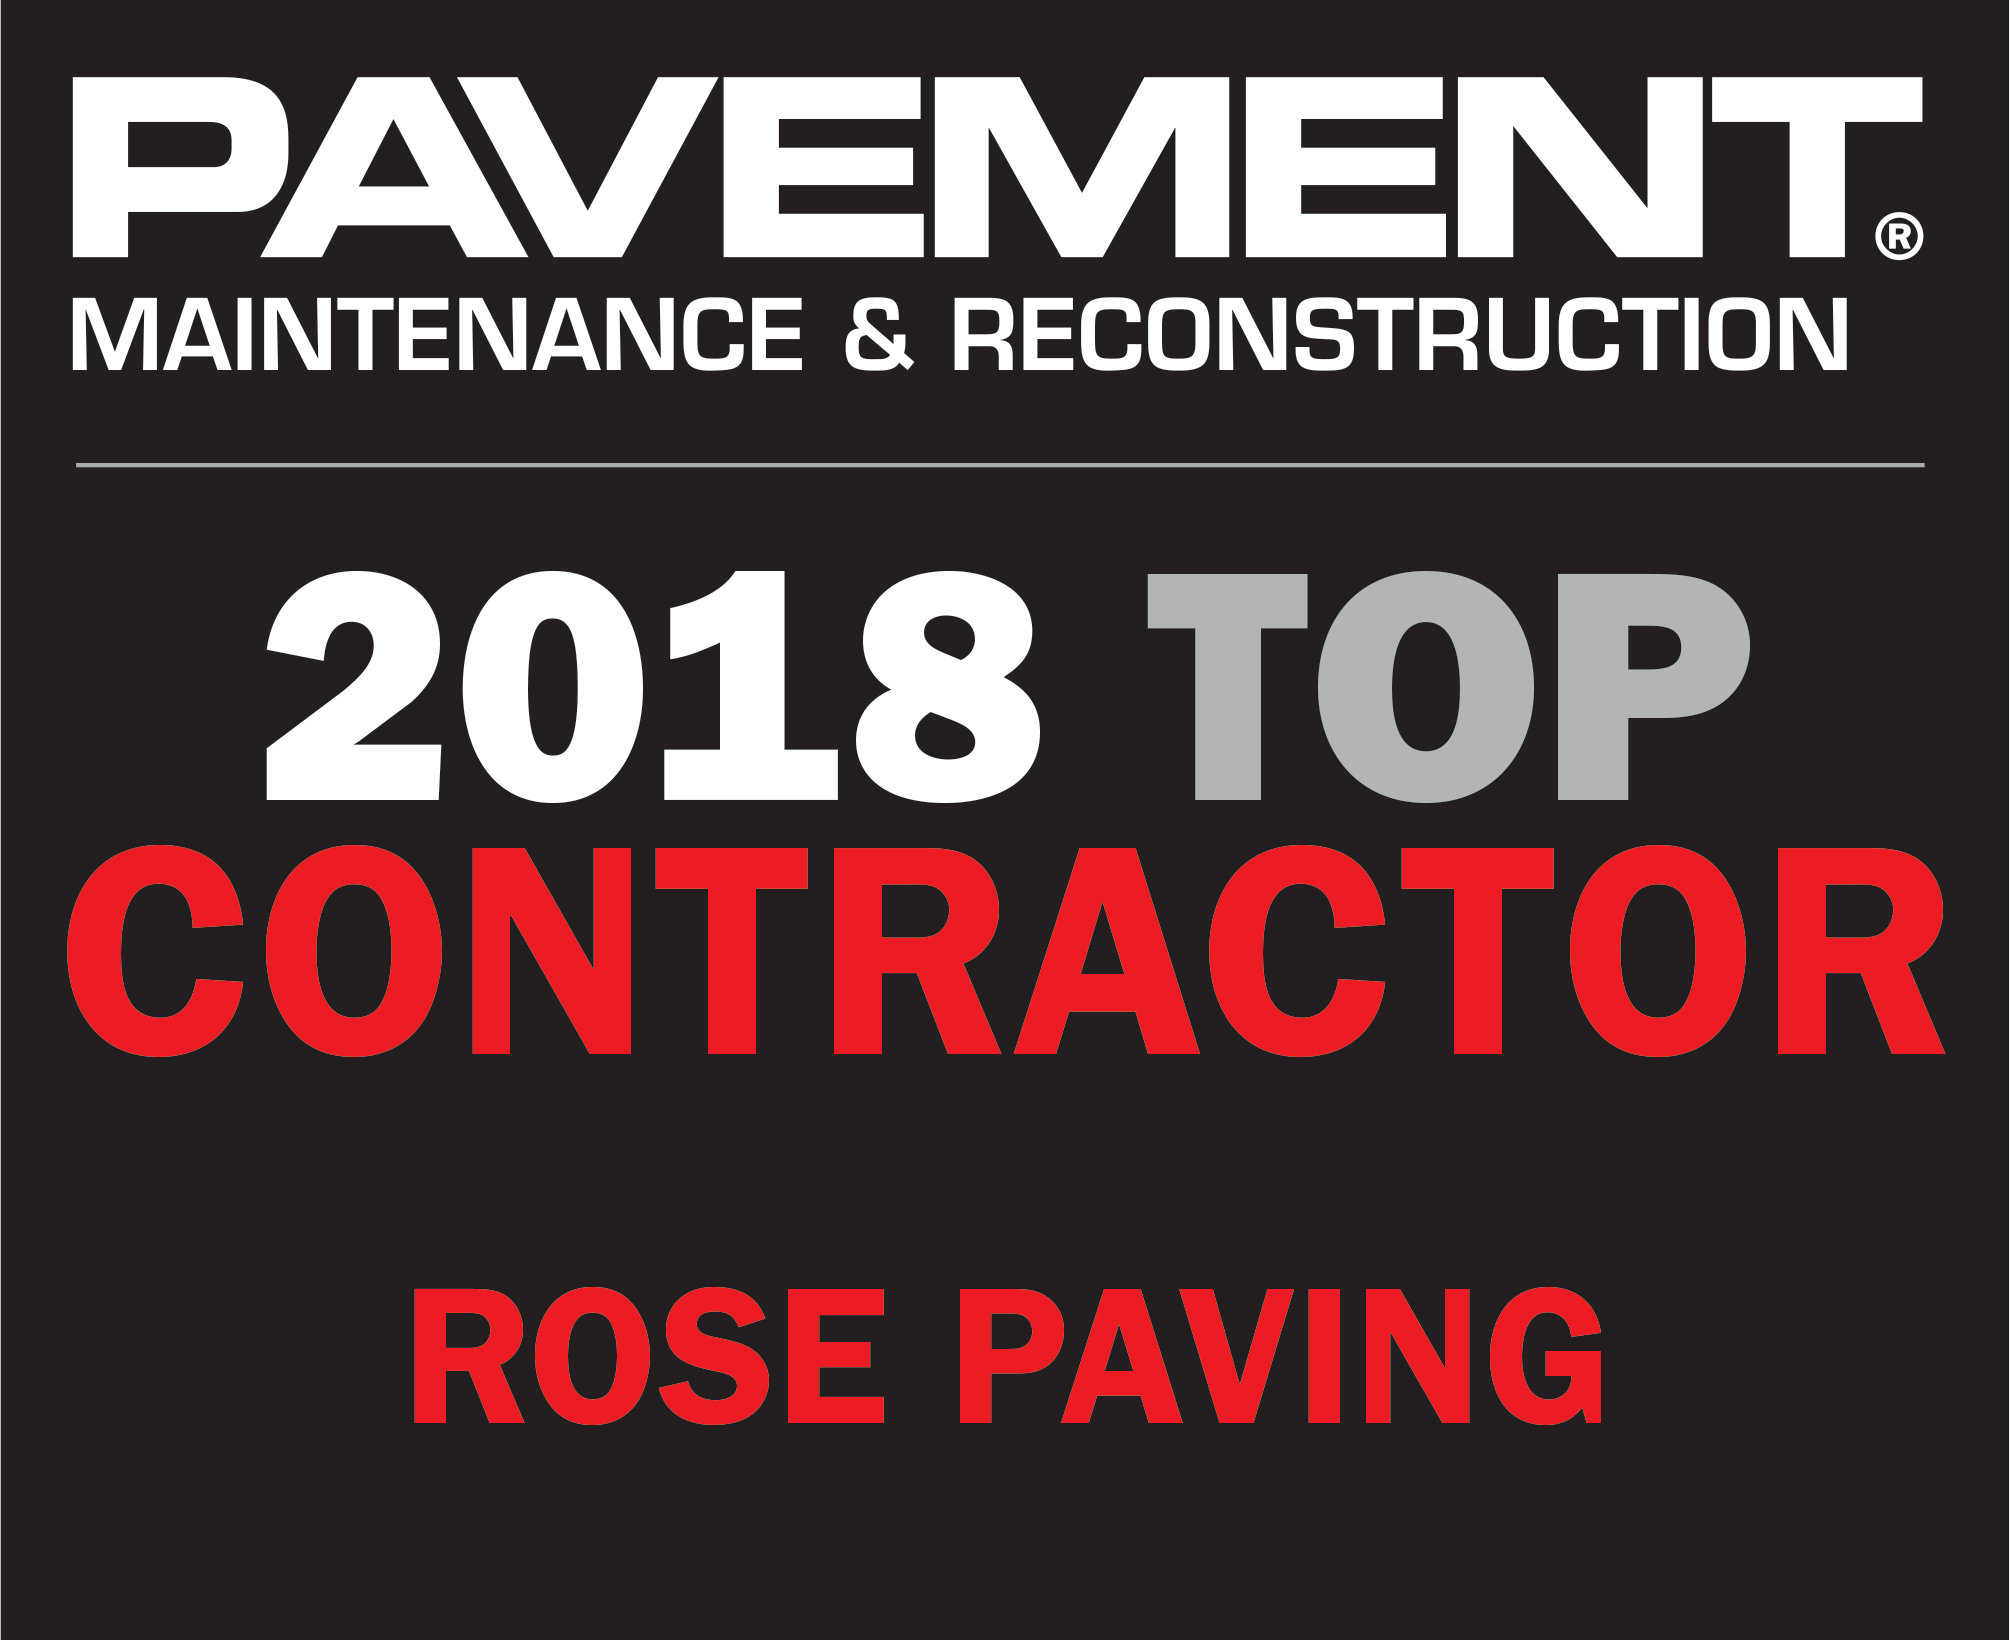 Pavement Maintenance and Reconstruction 2018 Top Contractor